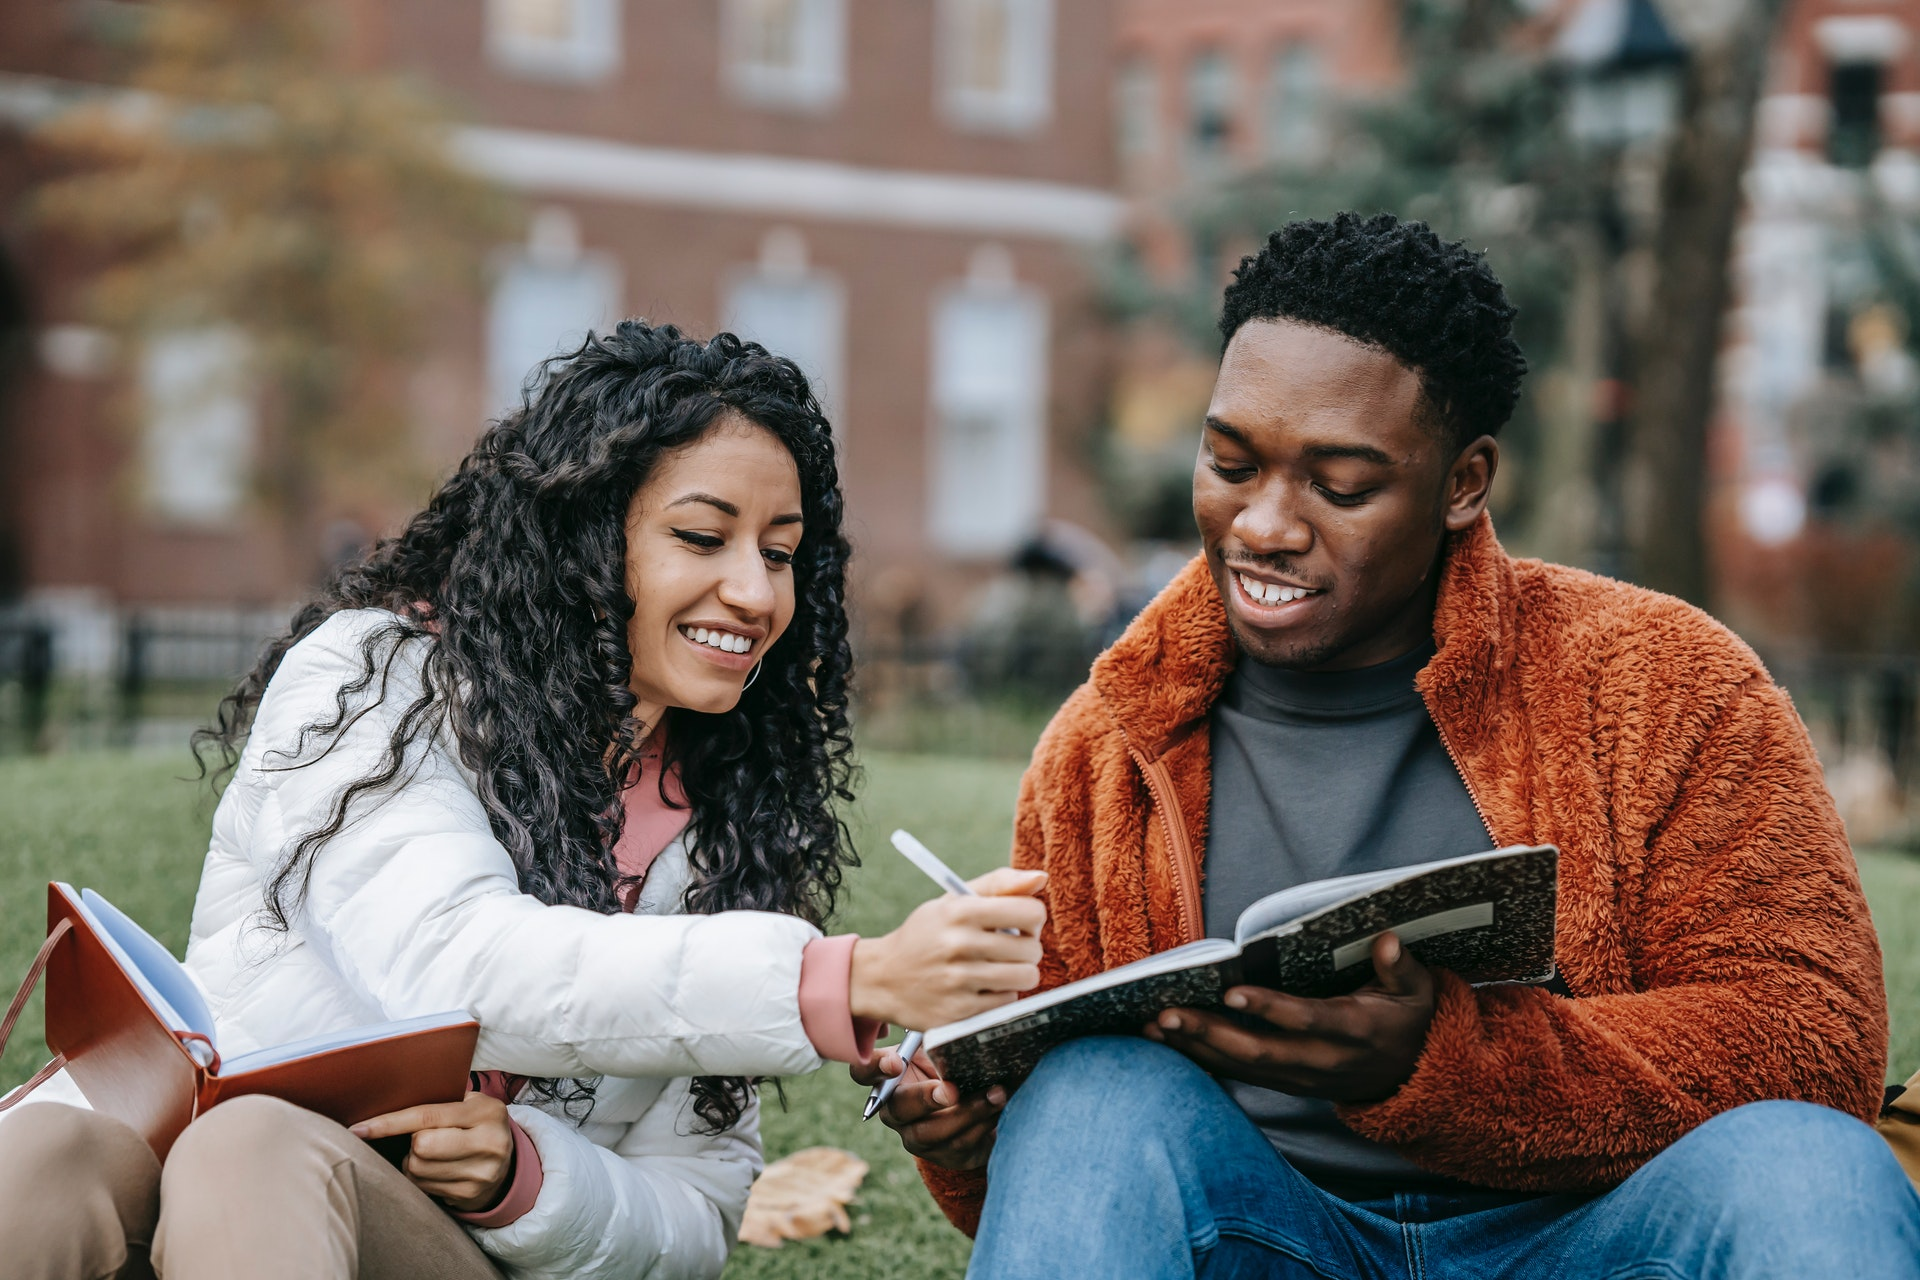 Creative Gift Ideas for College Students